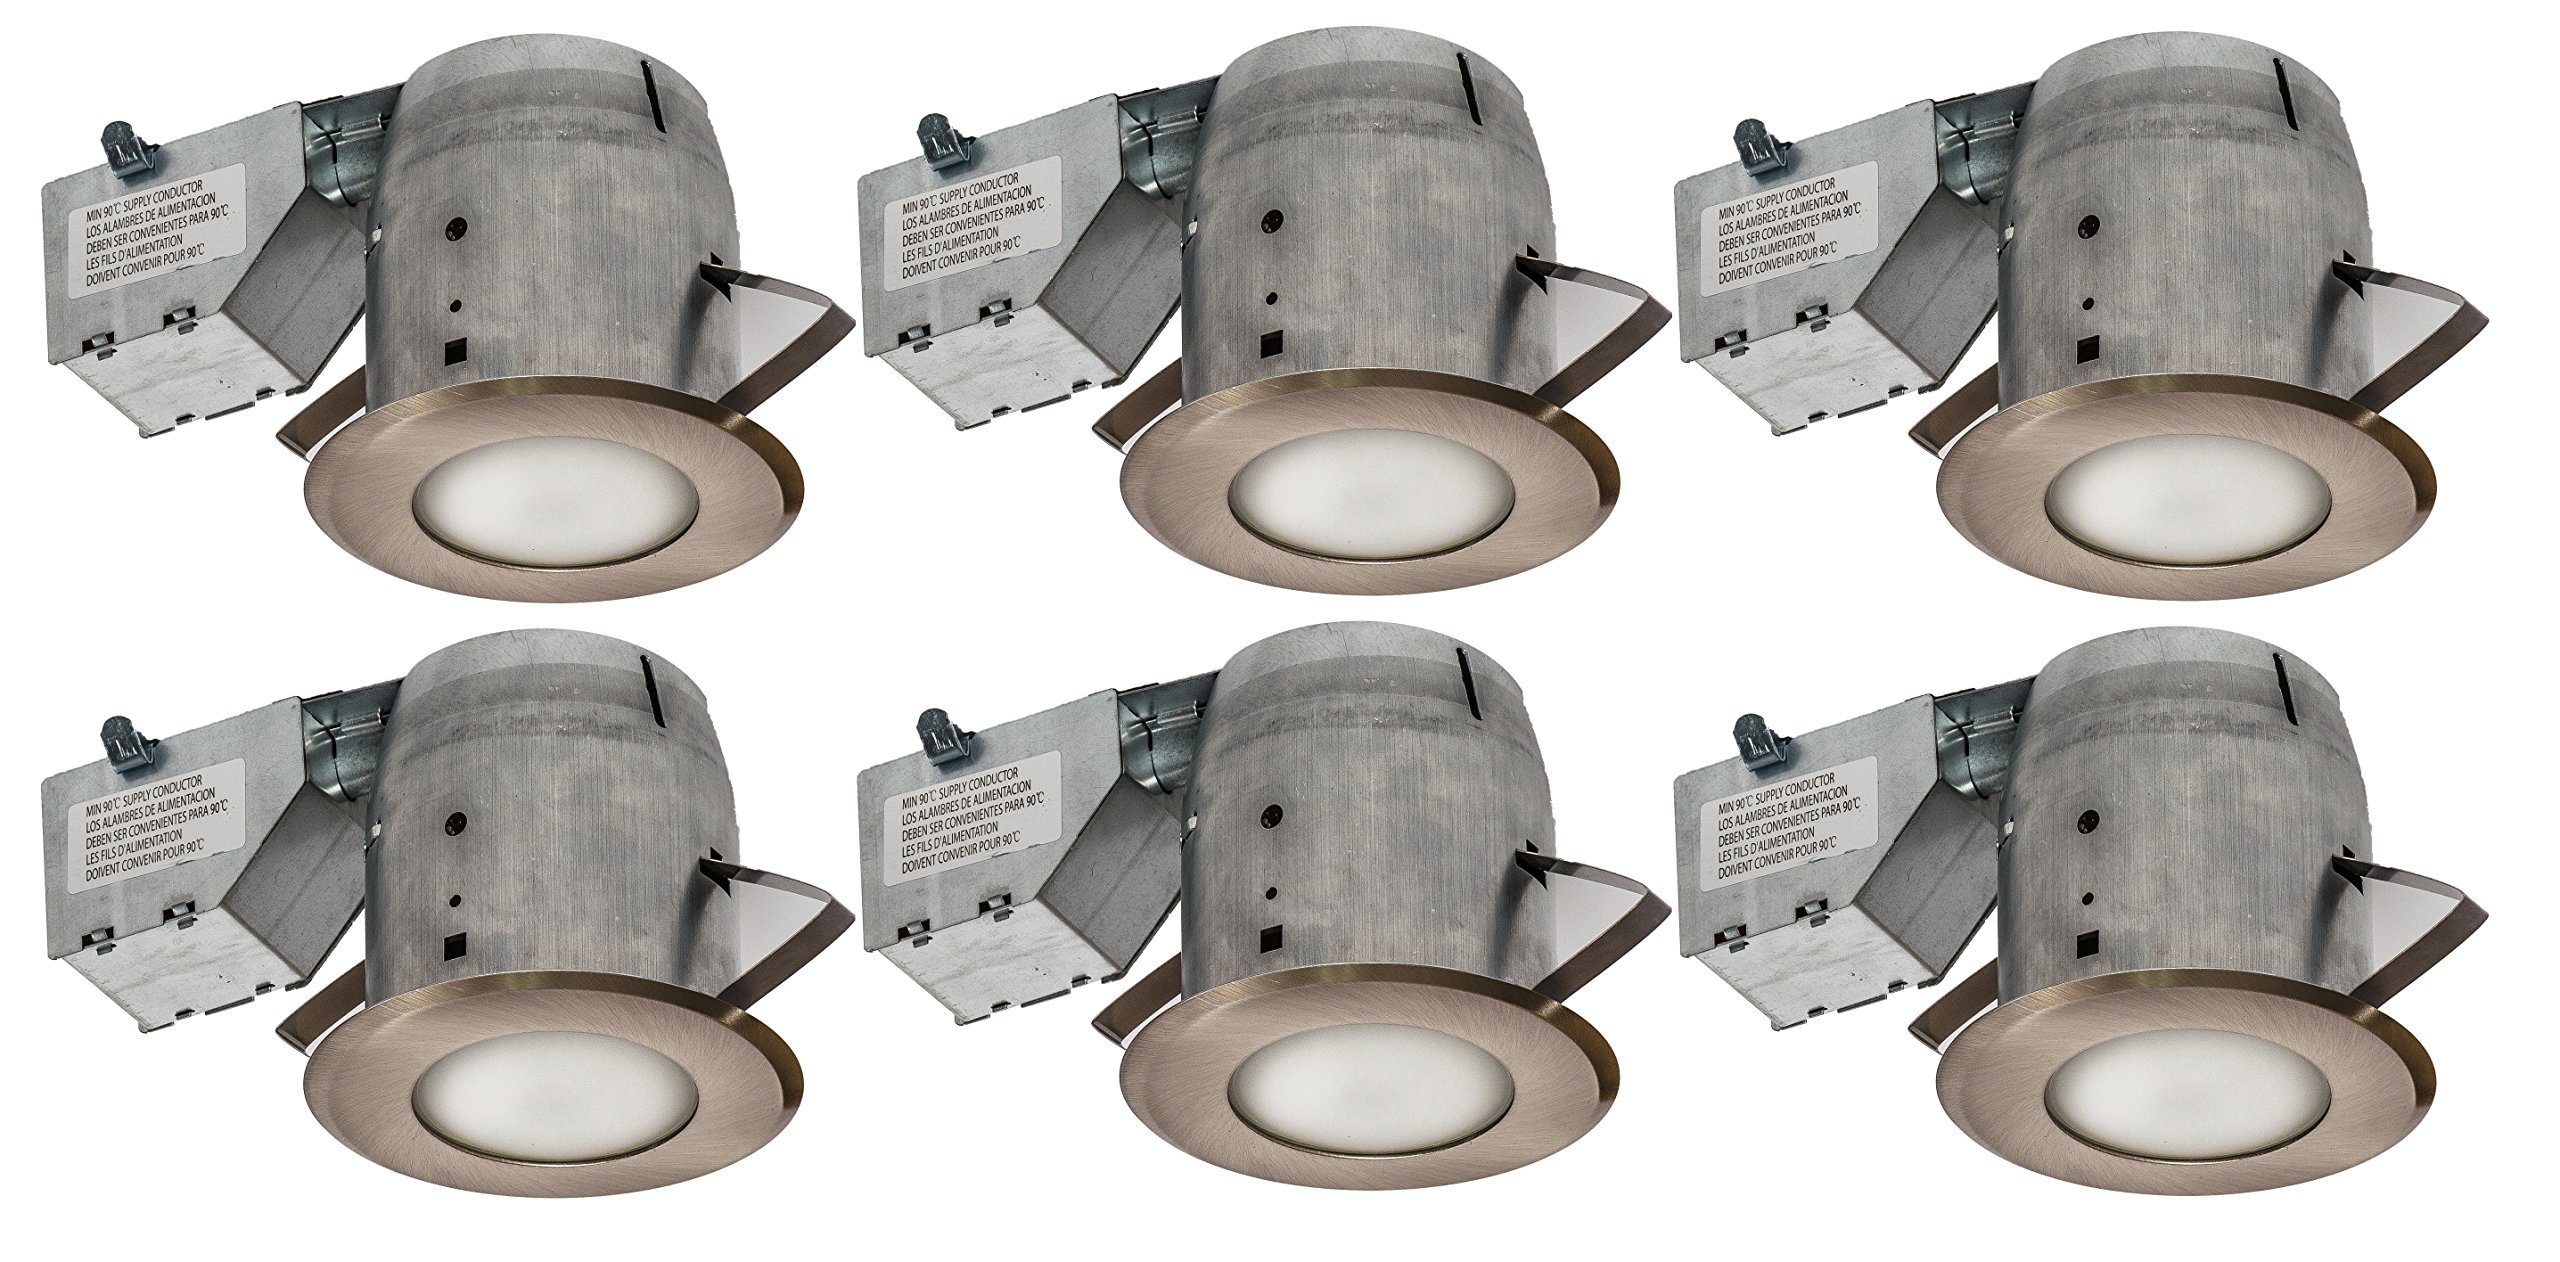 Nadair 4in Shower Recessed Lighting Kit (x6) Dimmable LED Downlight Bathroom Spotlights - IC Rated - GU10 550 Lumens Bulbs (50 Watts Equivalent) Included, 6-Pack Bronze Color by Nadair